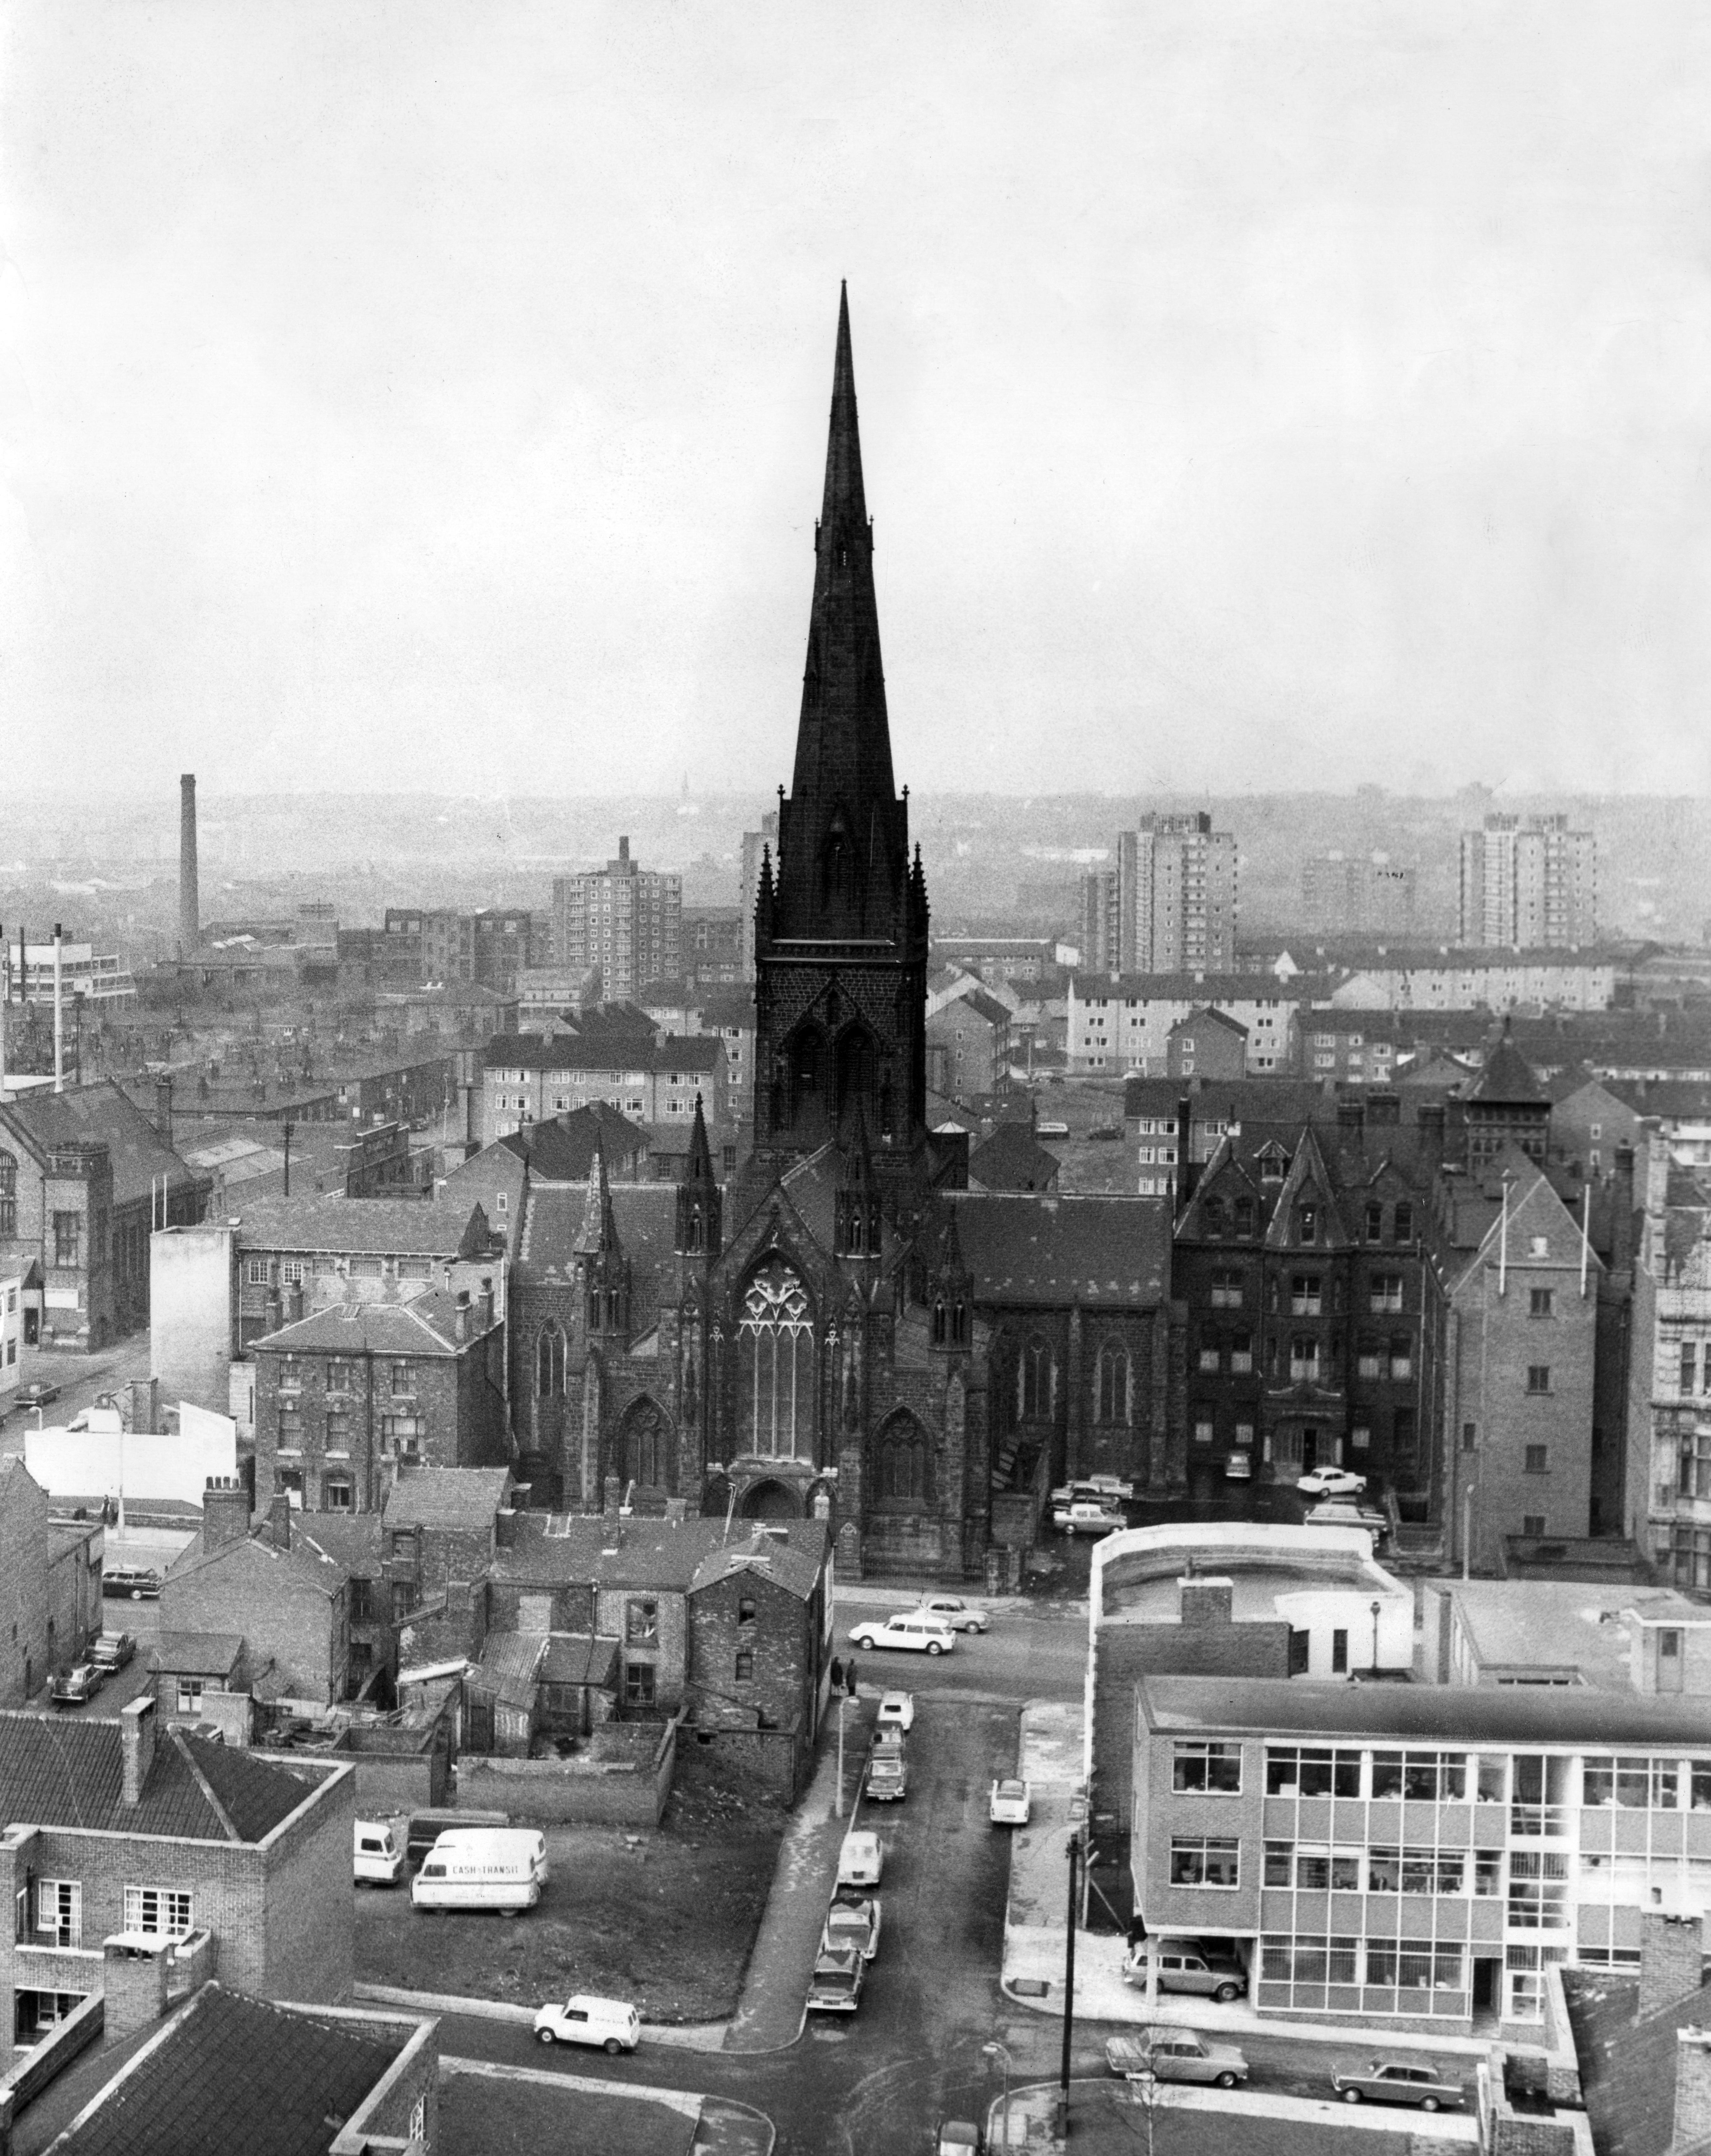 A Photo of Salford Cathedral, Manchester. 24th June 1967. The Cathedral Church of St. John the Evangelist, usually known as Salford Cathedral, is a Roman Catholic cathedral in the City of Salford in Greater Manchester, England.